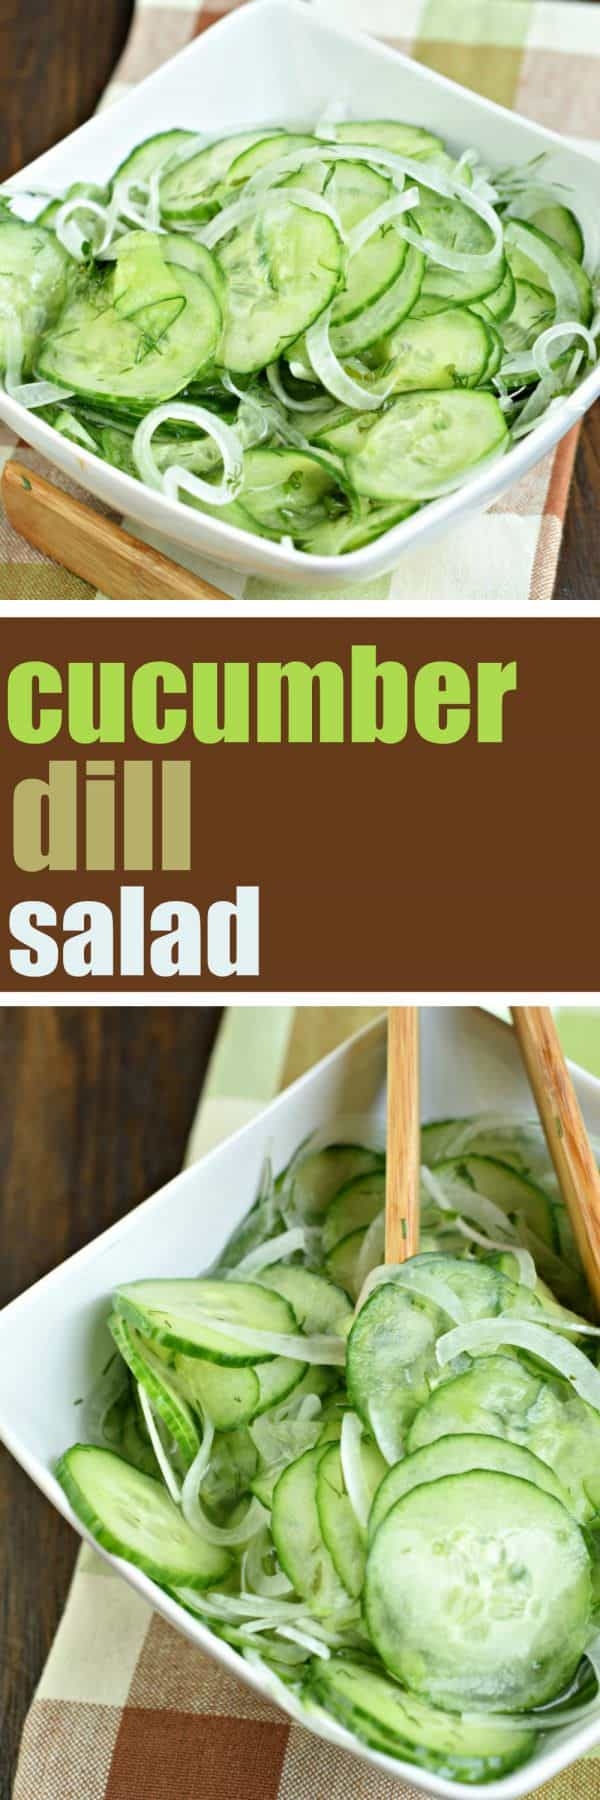 You'll love this garden fresh Cucumber Dill Salad! Serve it up with your next summer meal for a crisp, savory, flavorful bite!